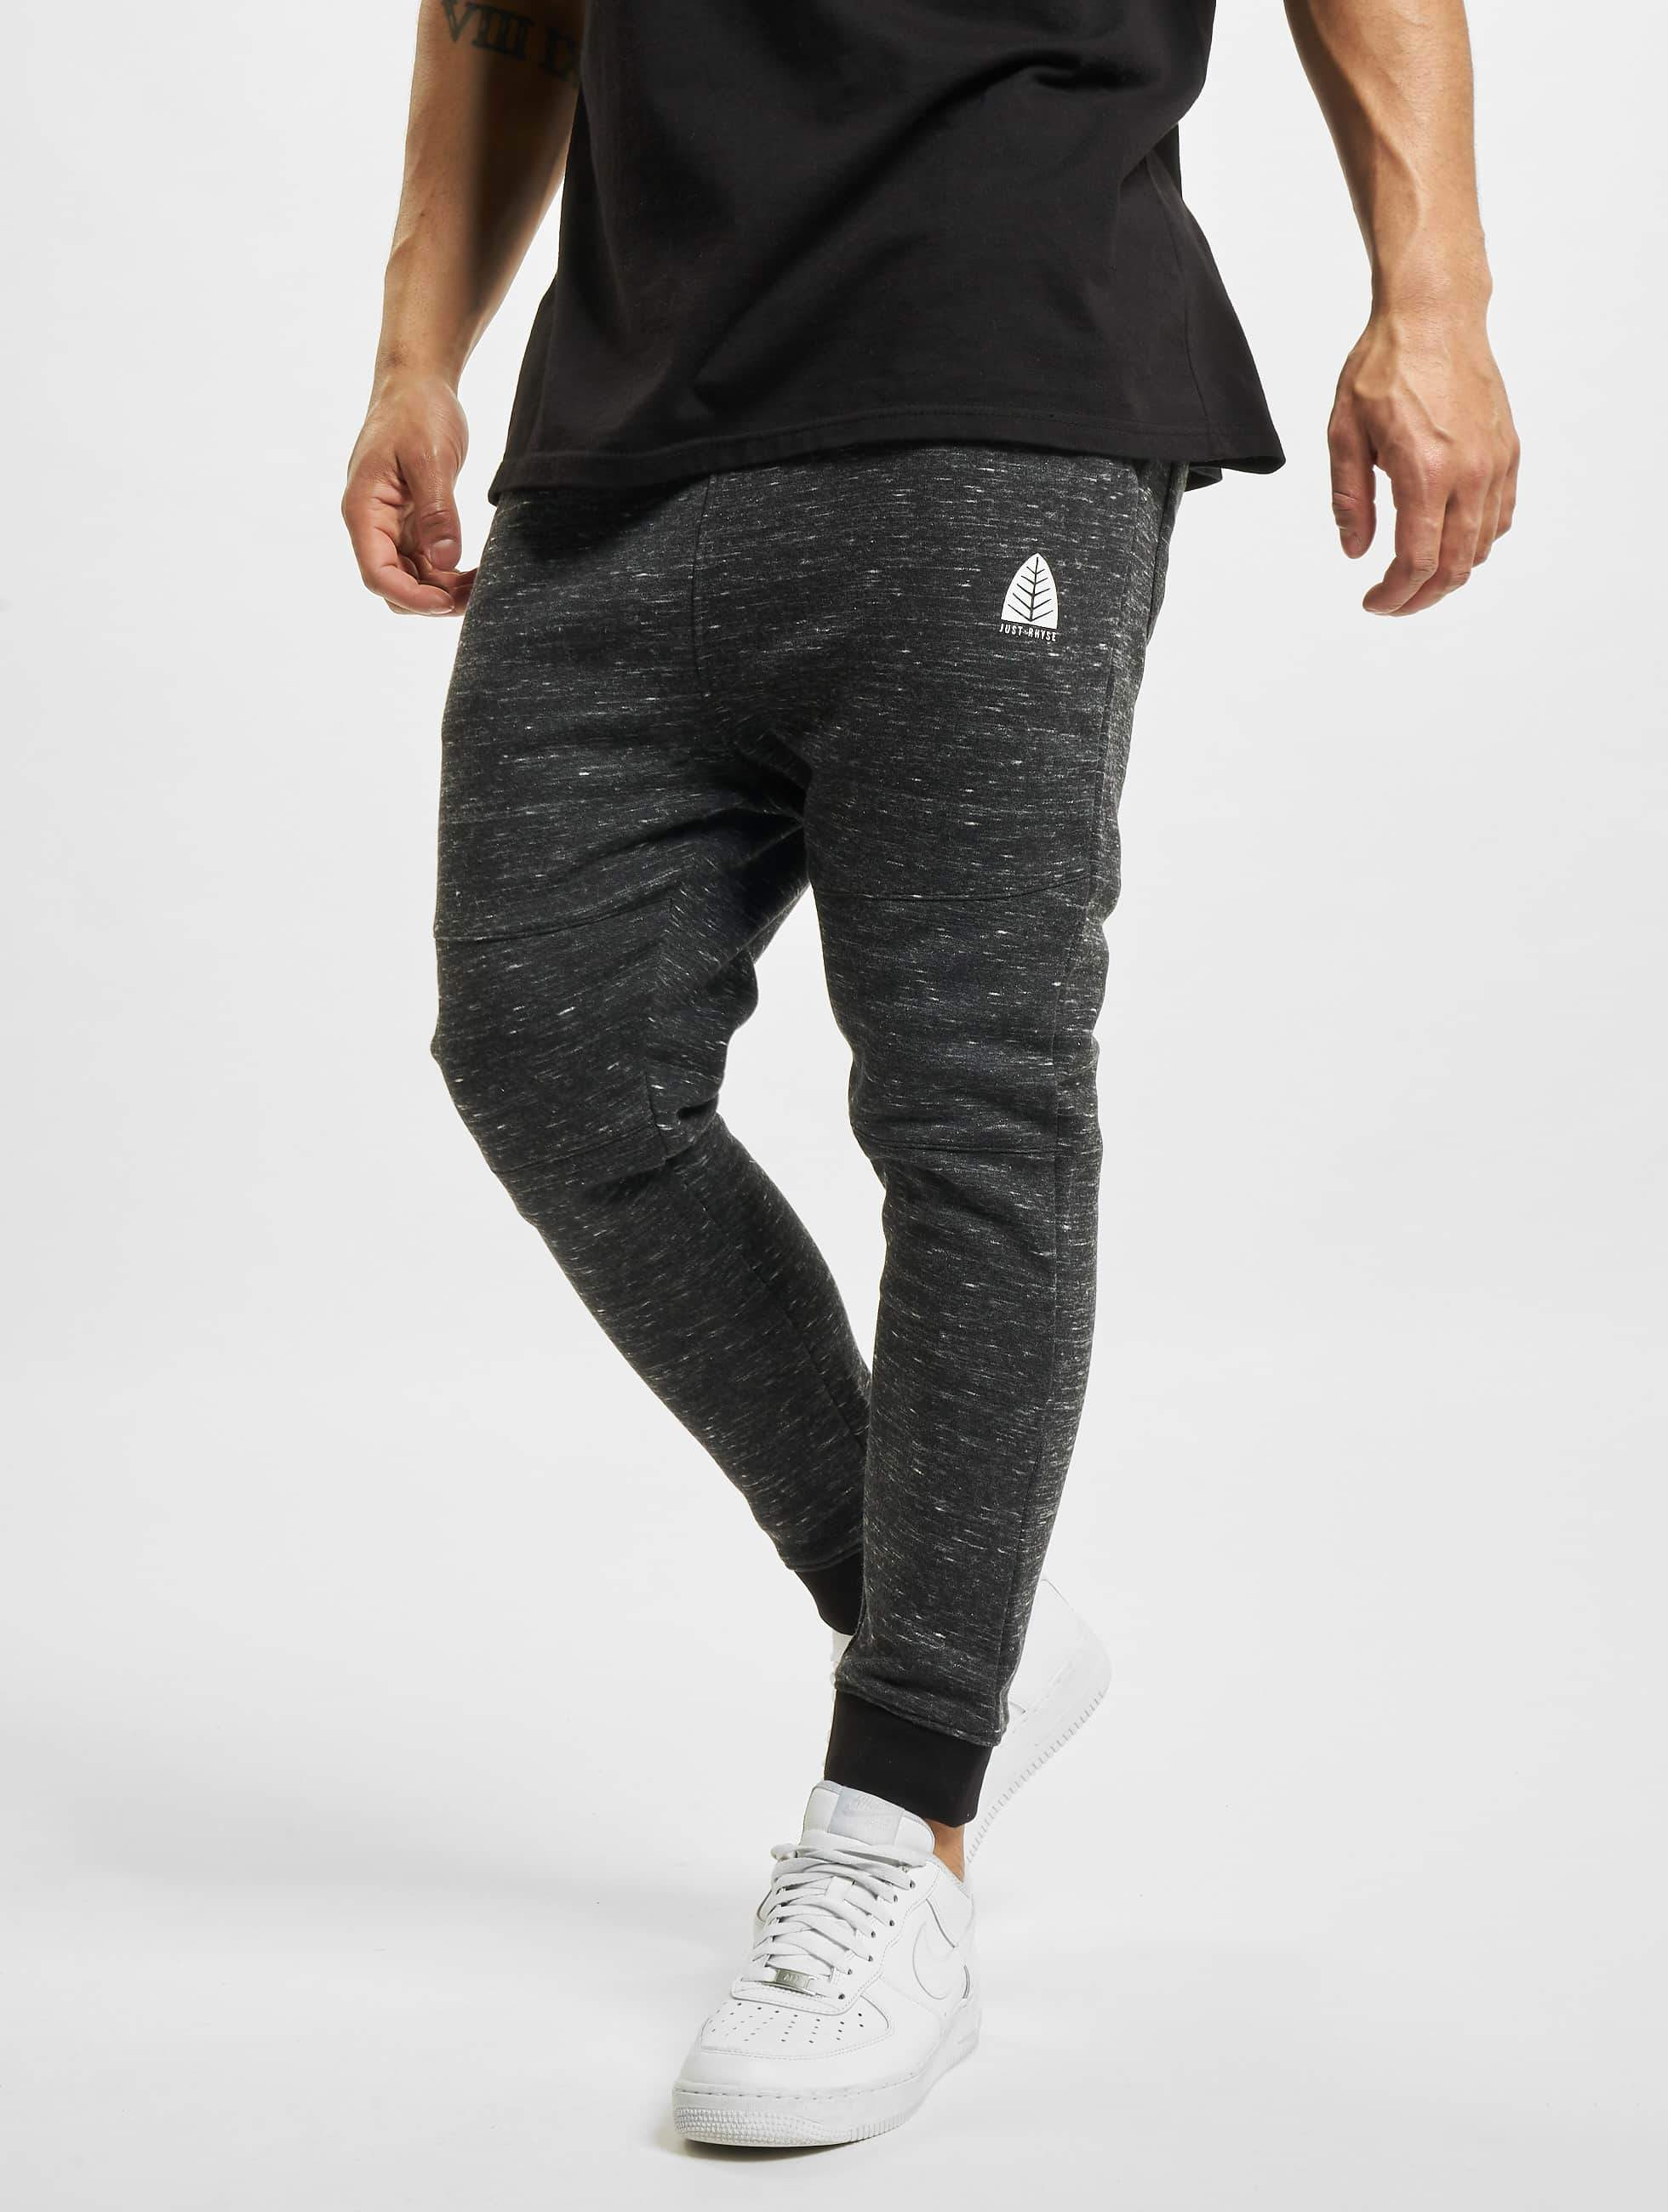 Just Rhyse / Sweat Pant Rainrock in black M